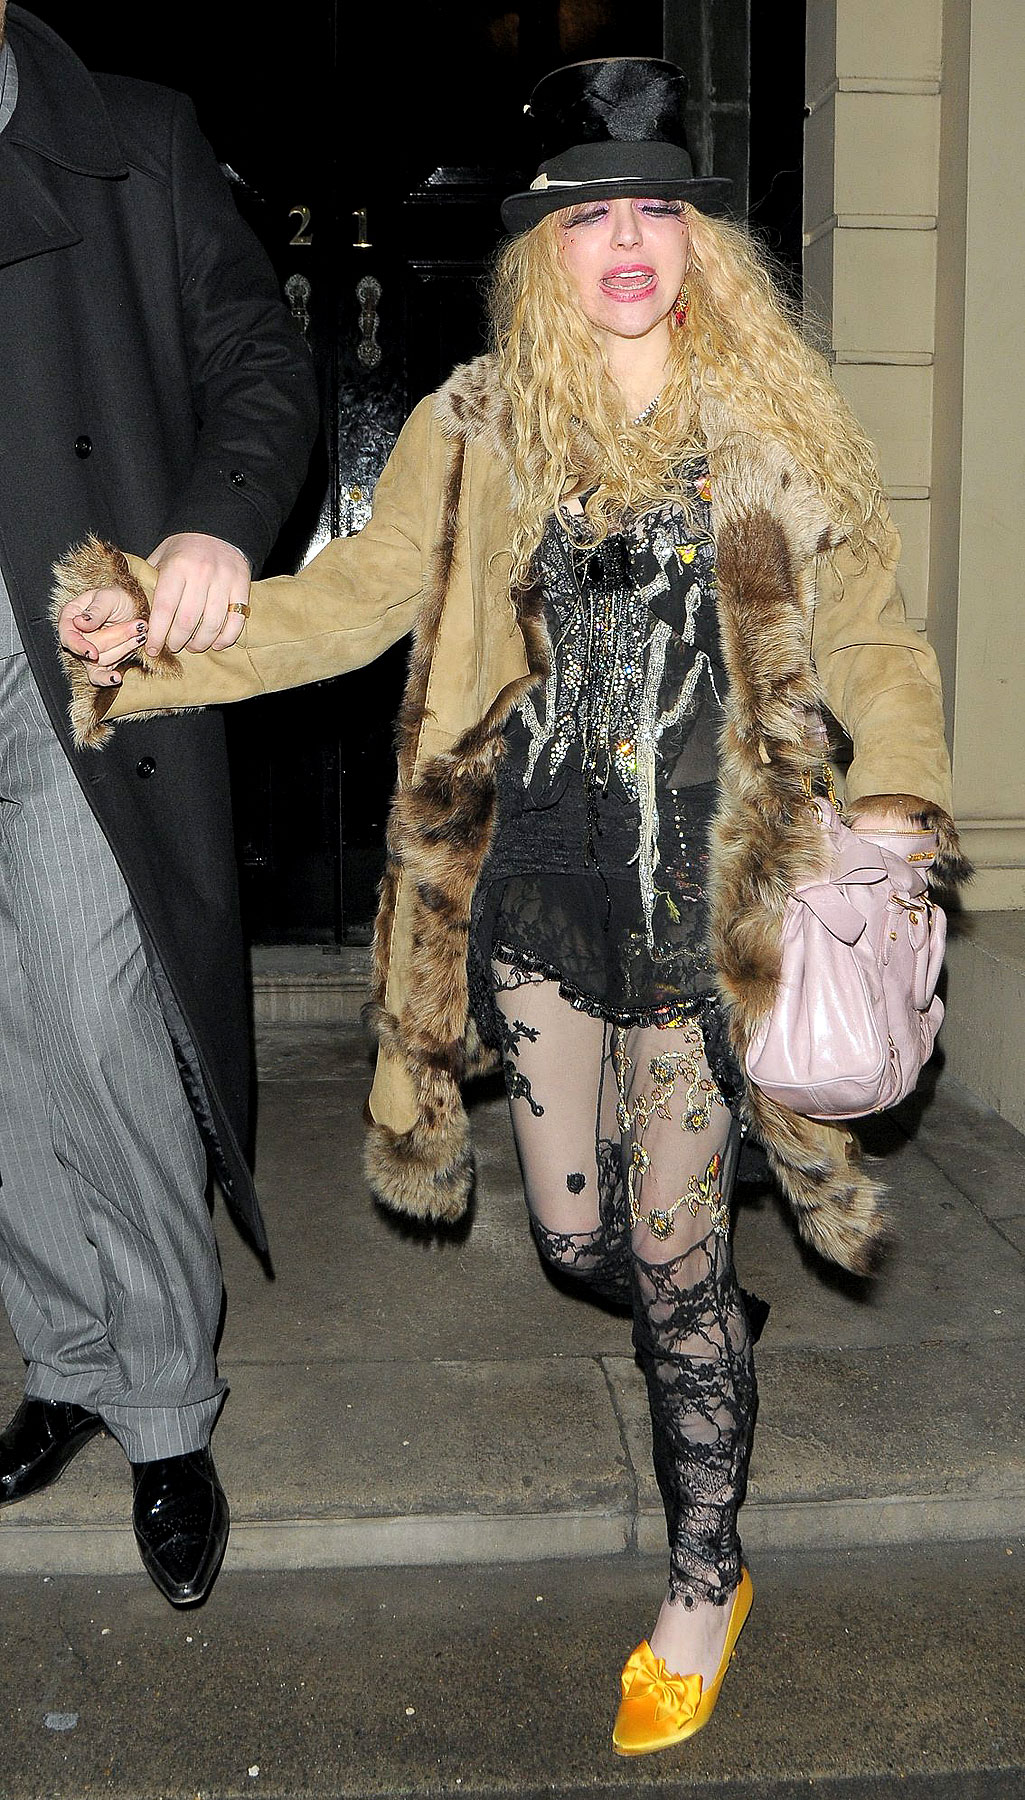 Courtney Love Caps Off the NME Awards With a Nice, Subdued Evening. LOL, Not Really.